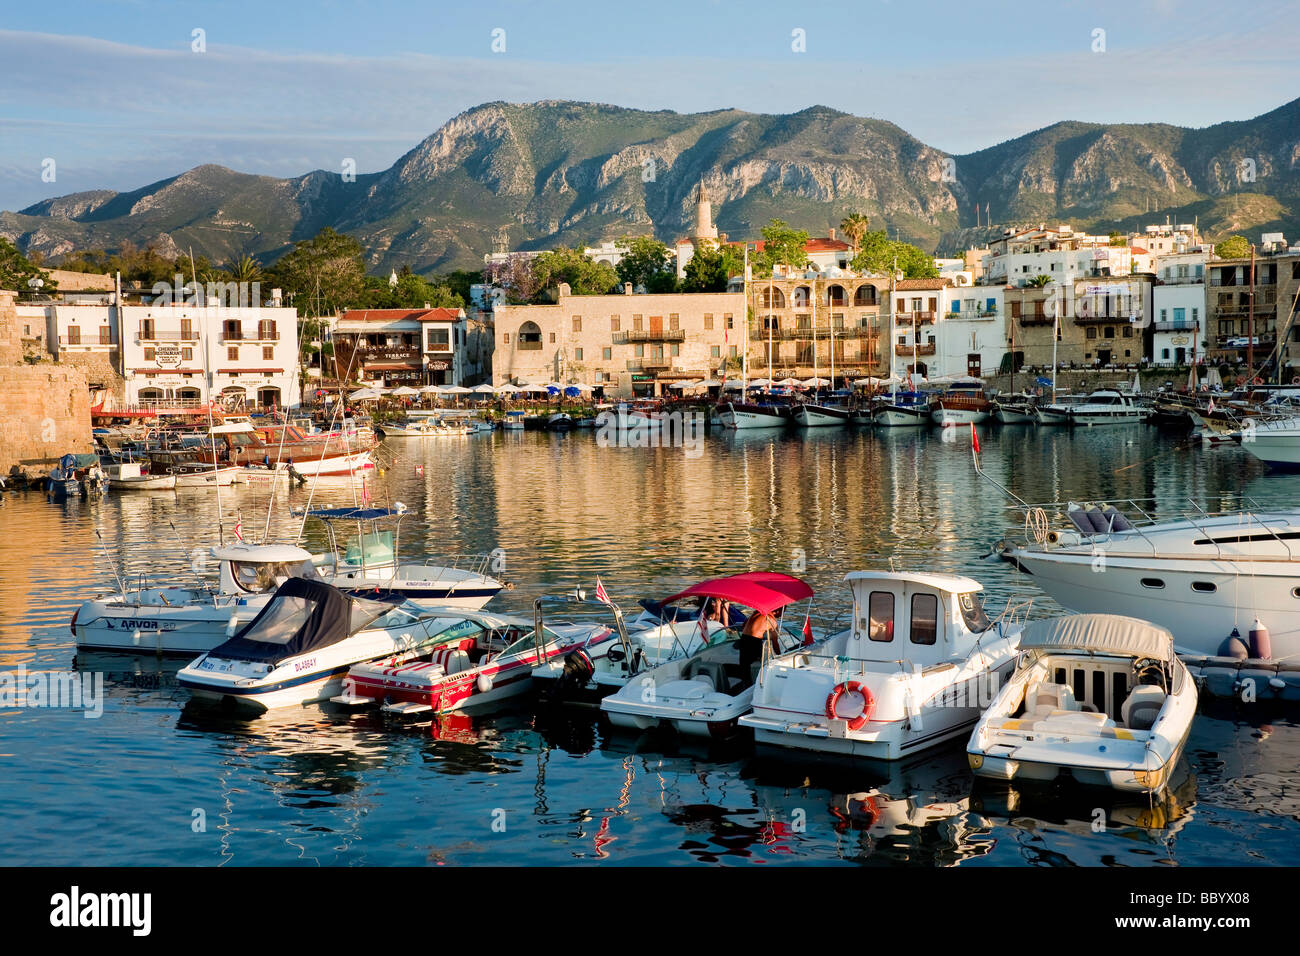 Evening mood at the fishing port of Kyrenia, also known as Girne, Northern Cyprus, Cyprus, Europe Stock Photo